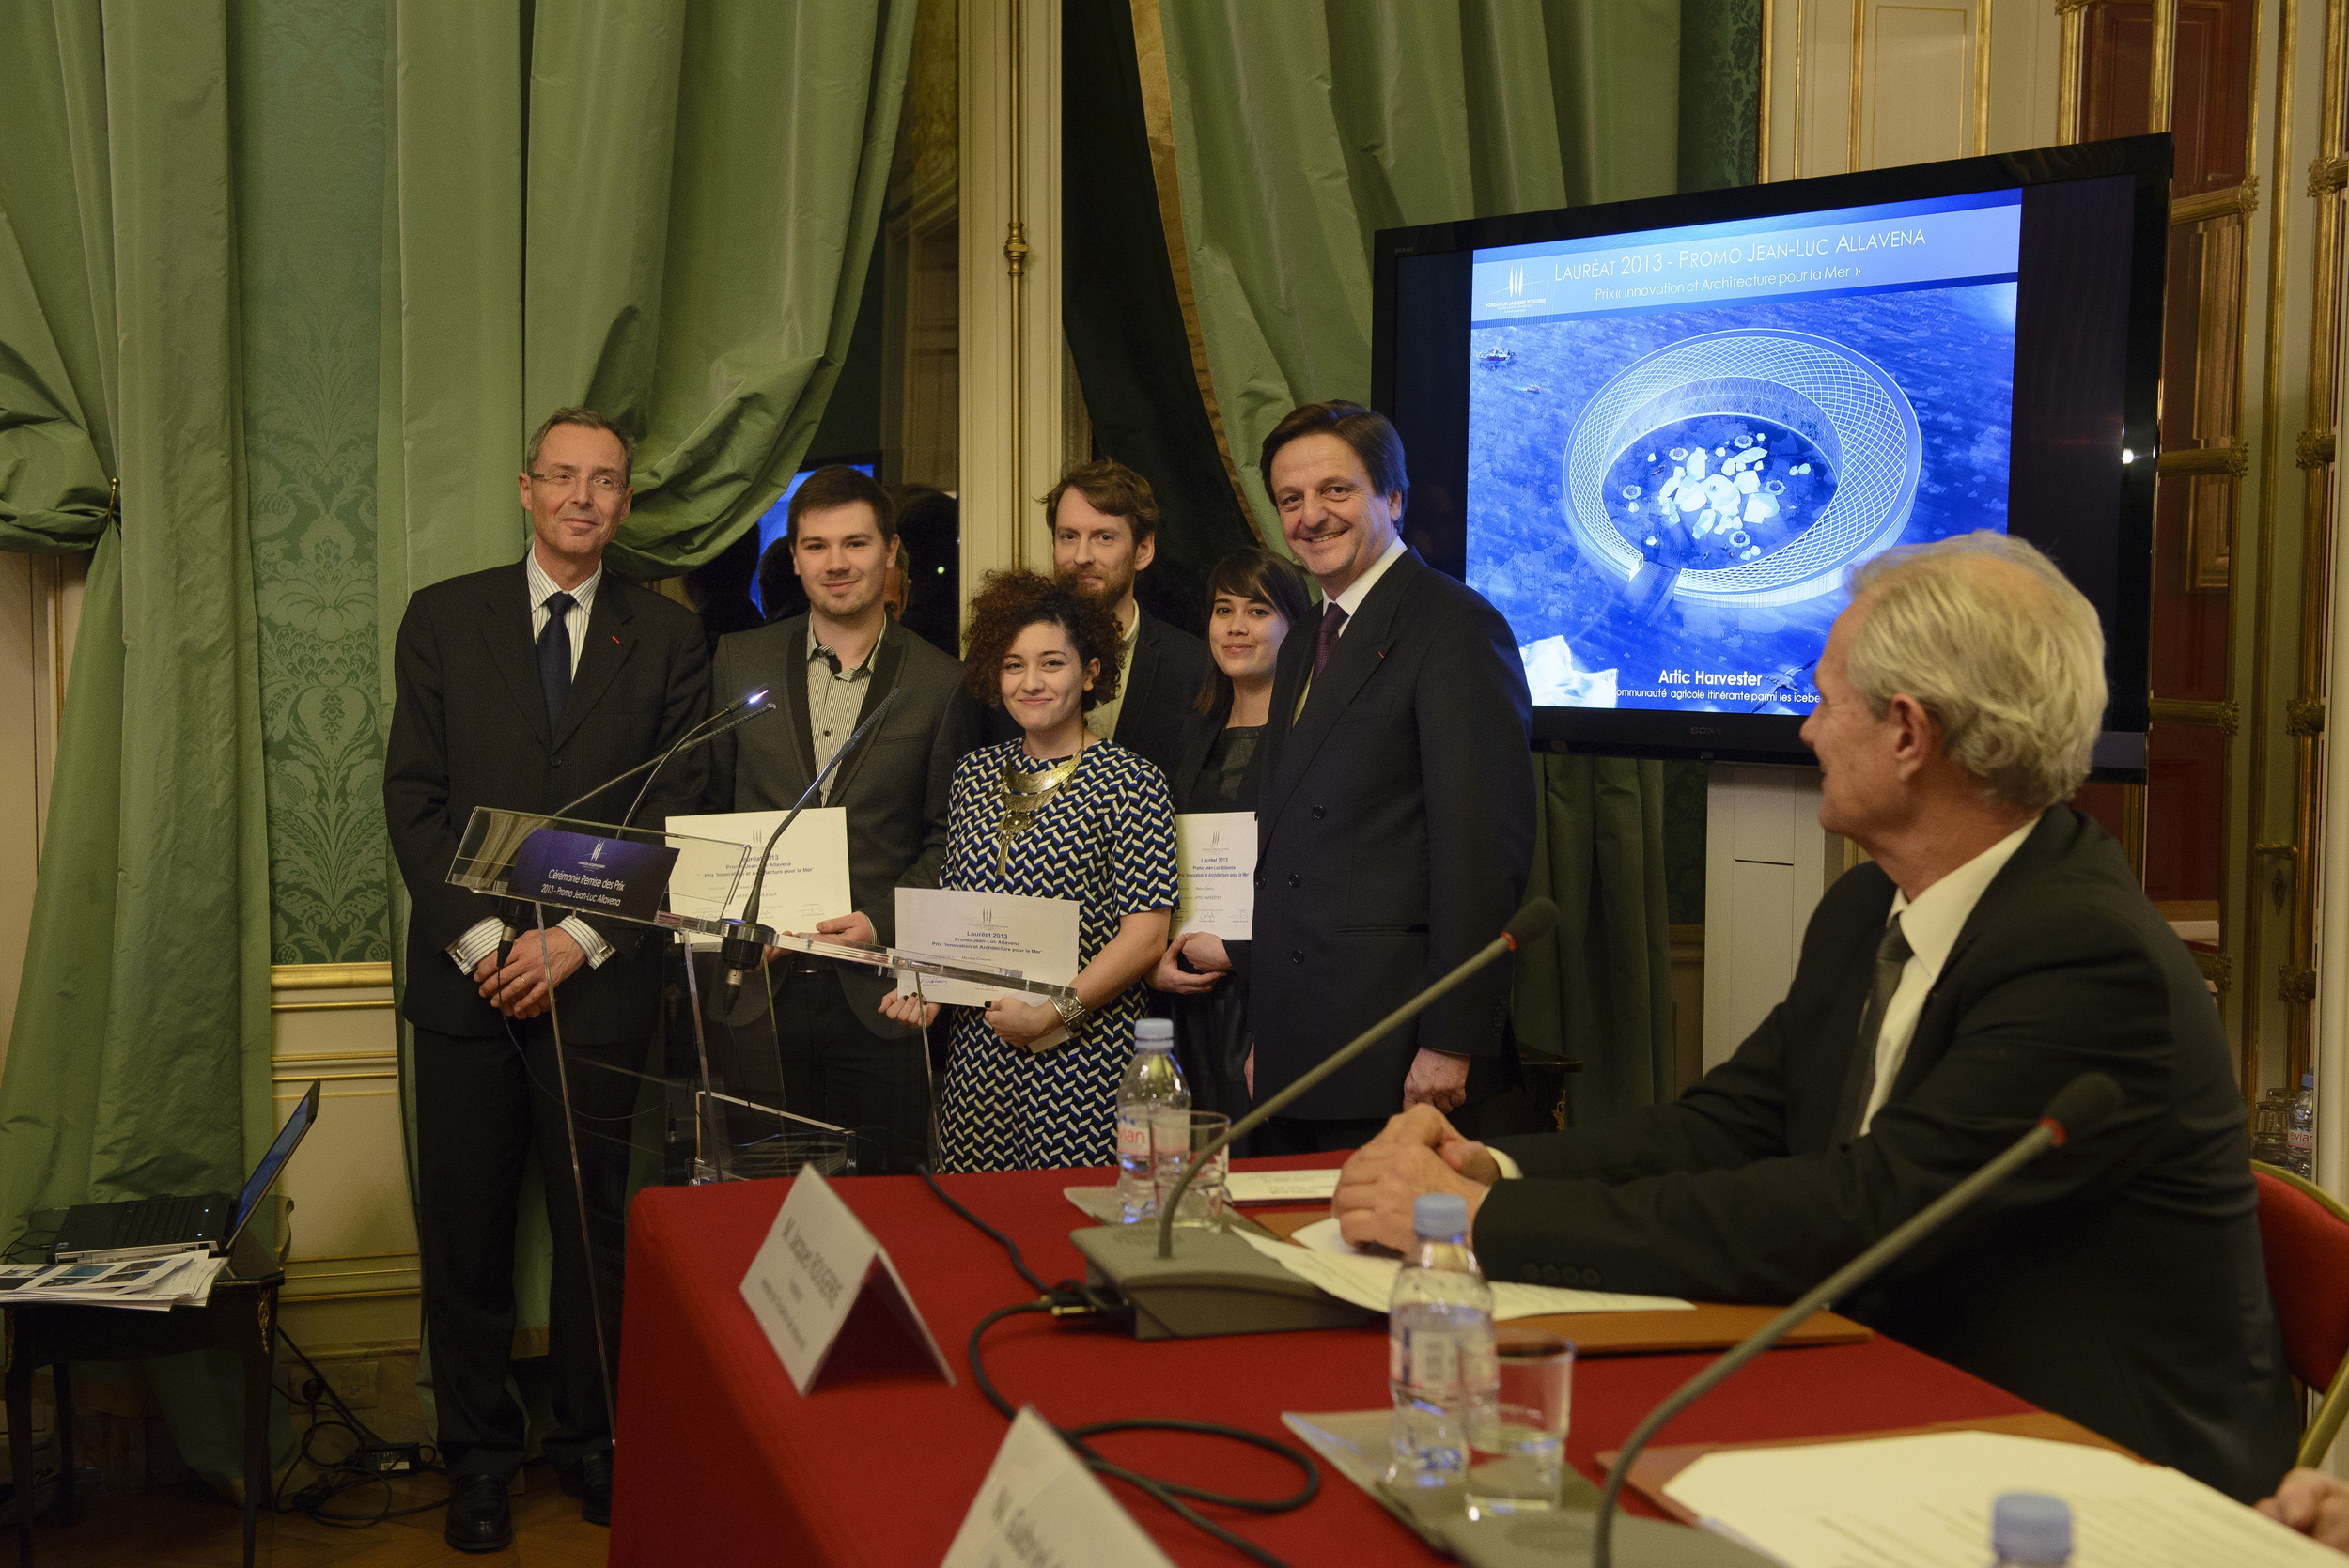 2013 Laureates - Innovation and Architecture for the Sea